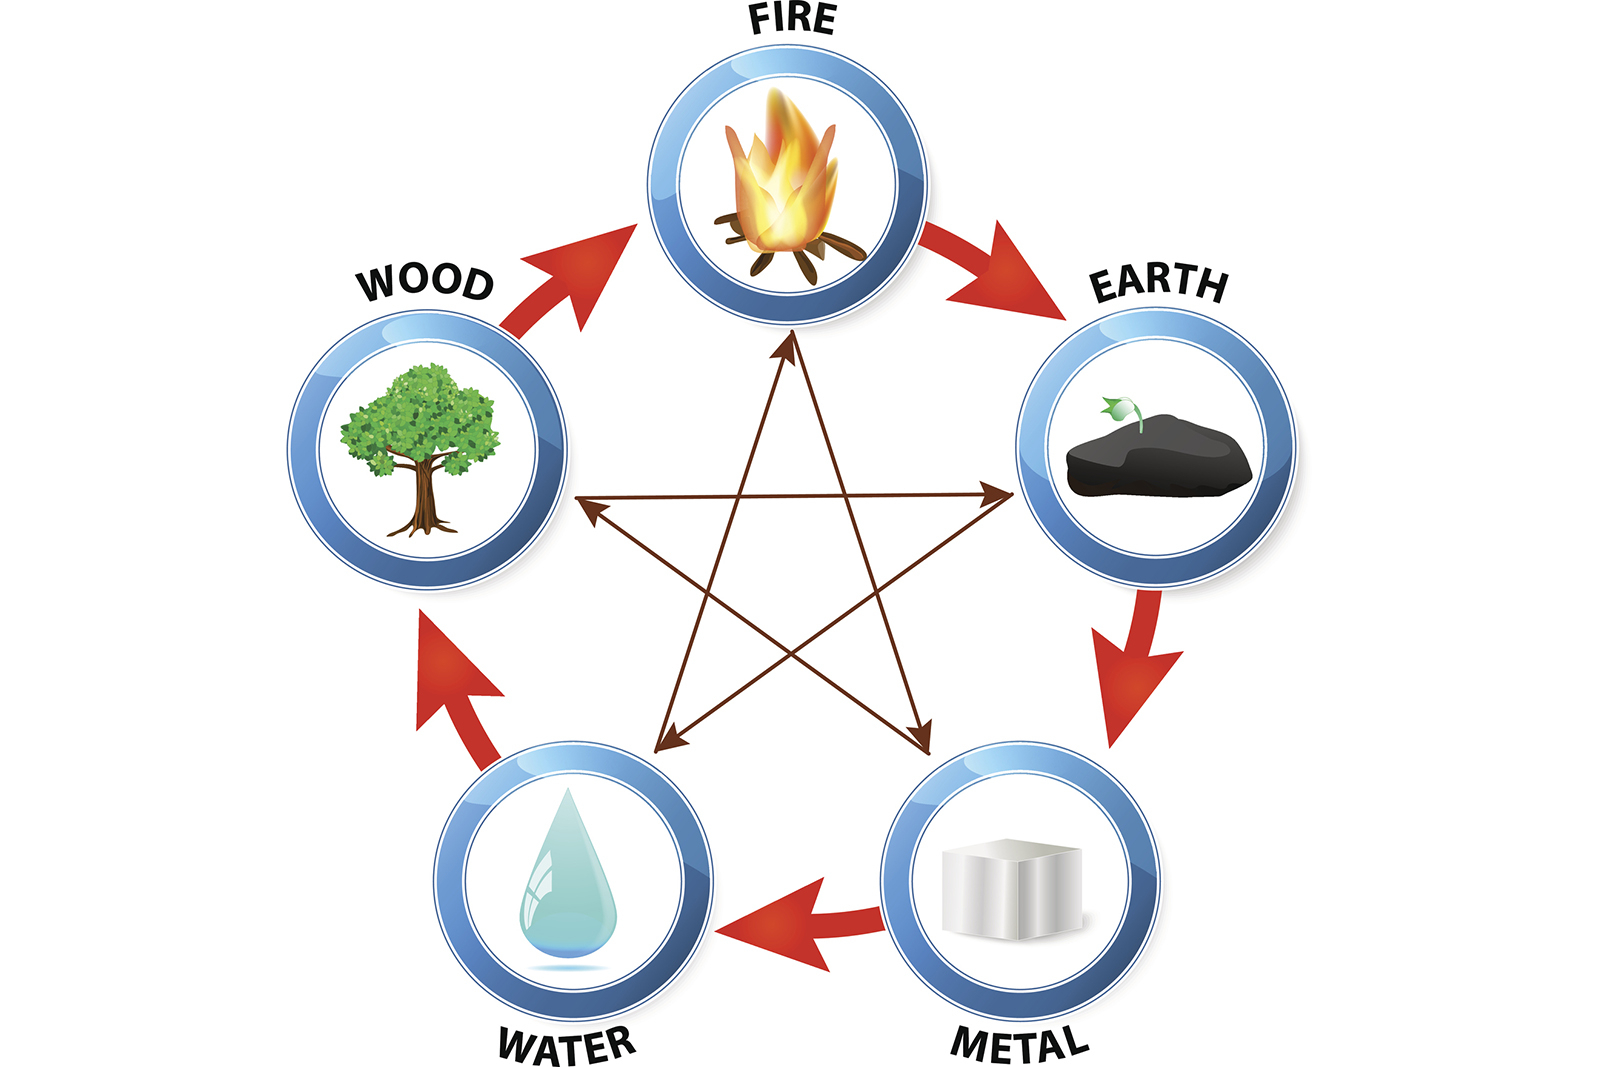 What Chinese Element Am I? | Lovetoknow